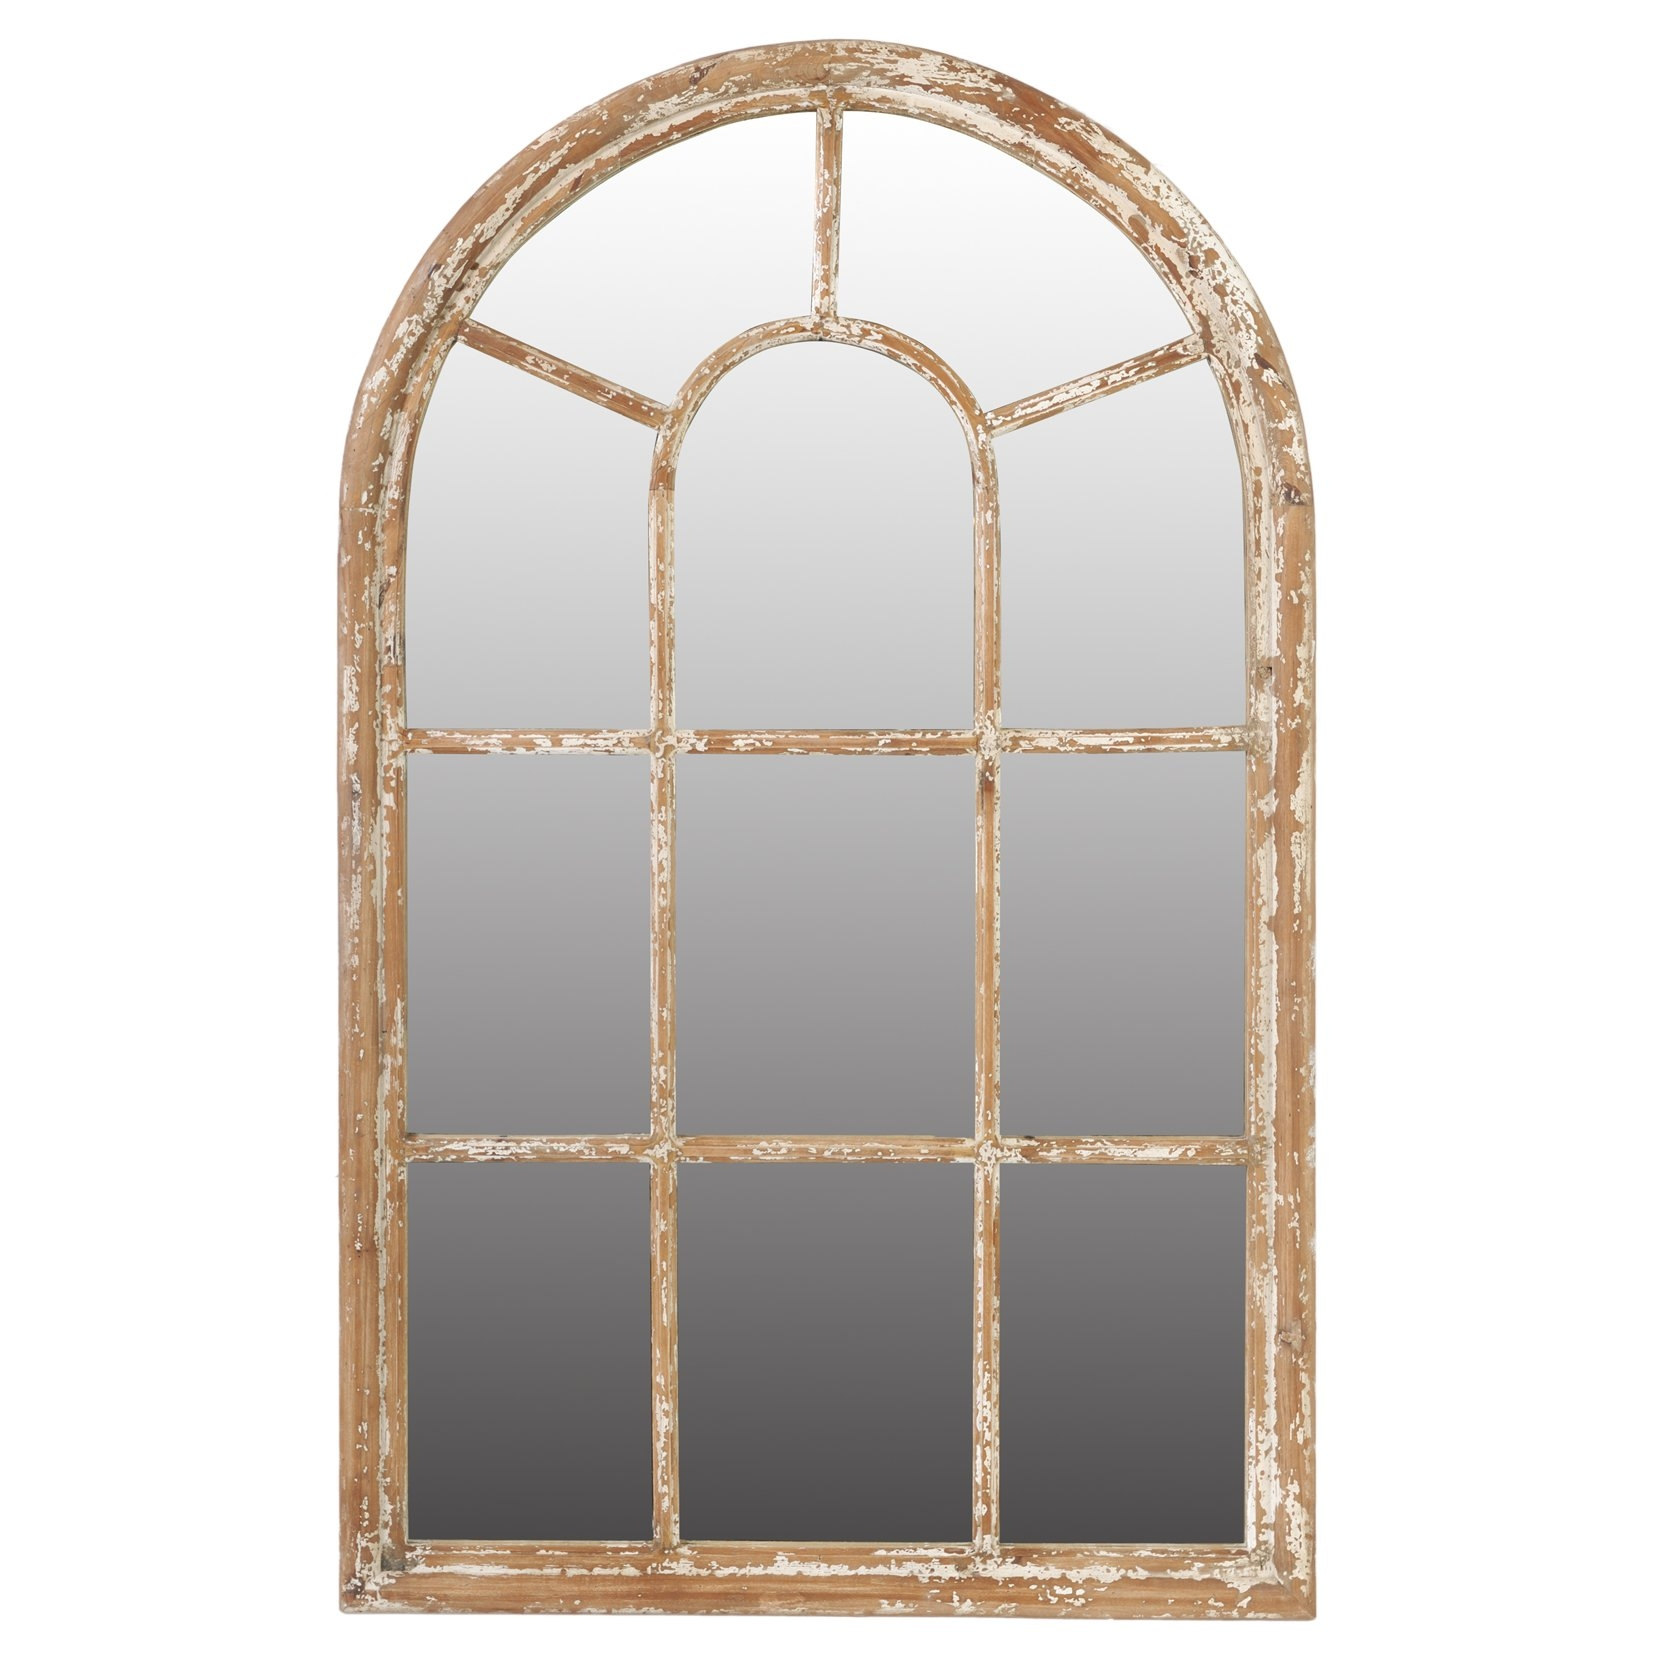 Laurel Foundry Modern Farmhouse Archcrowned Top Wall Mirror With Regard To Window Arch Mirror (View 13 of 15)